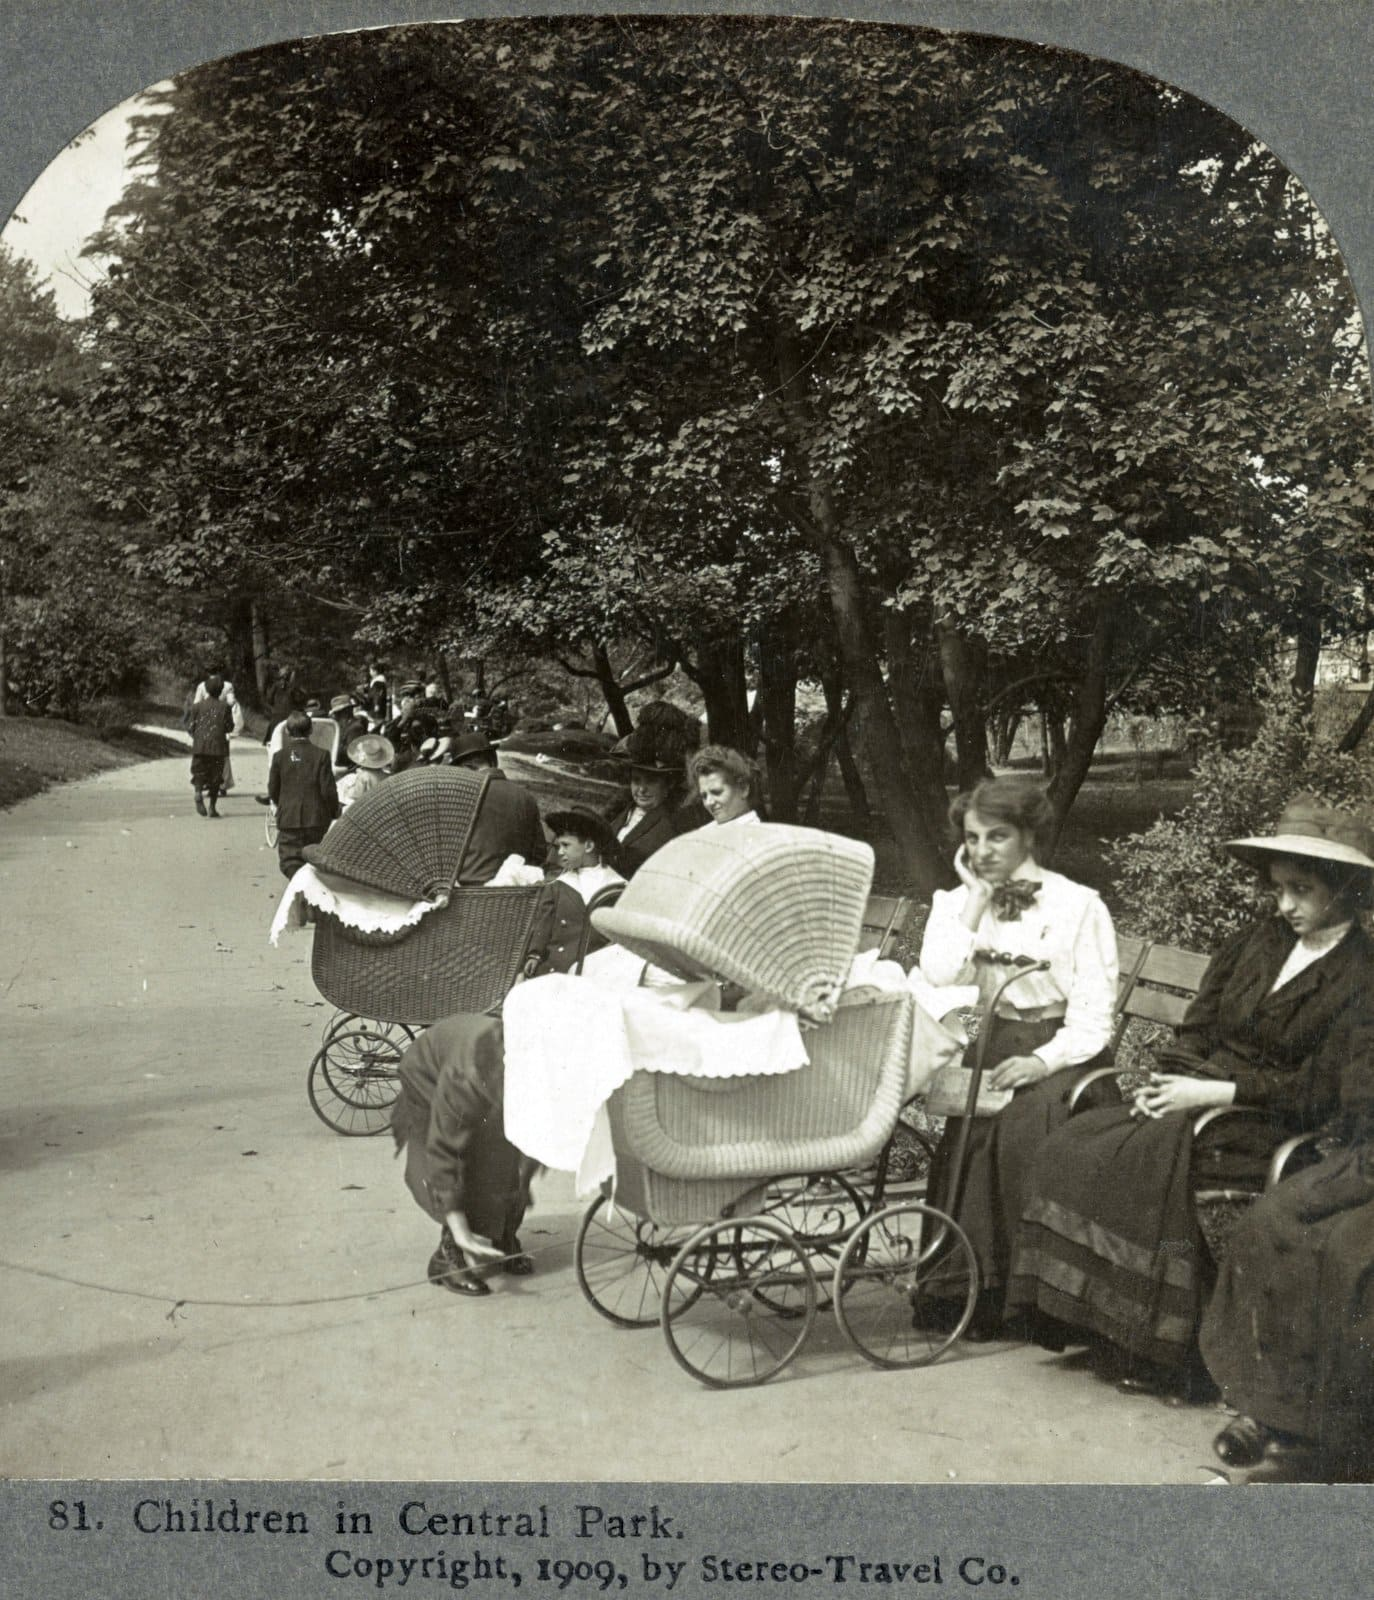 Vintage baby carriages in Central Park (1909)